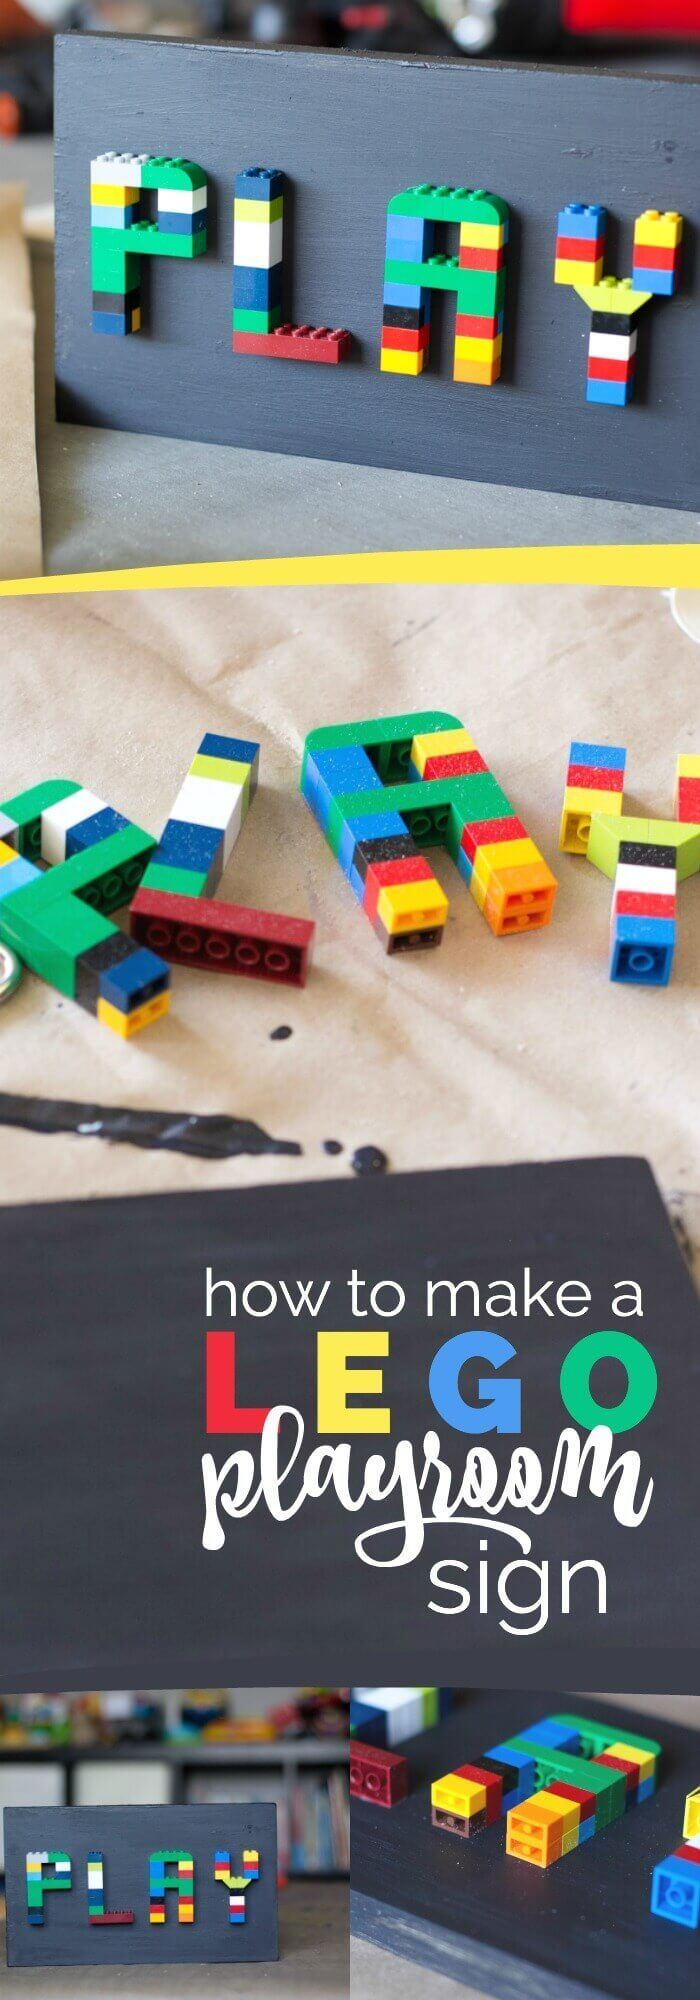 How to Make a DIY LEGO Sign #rapidfuse #woodworking #ad